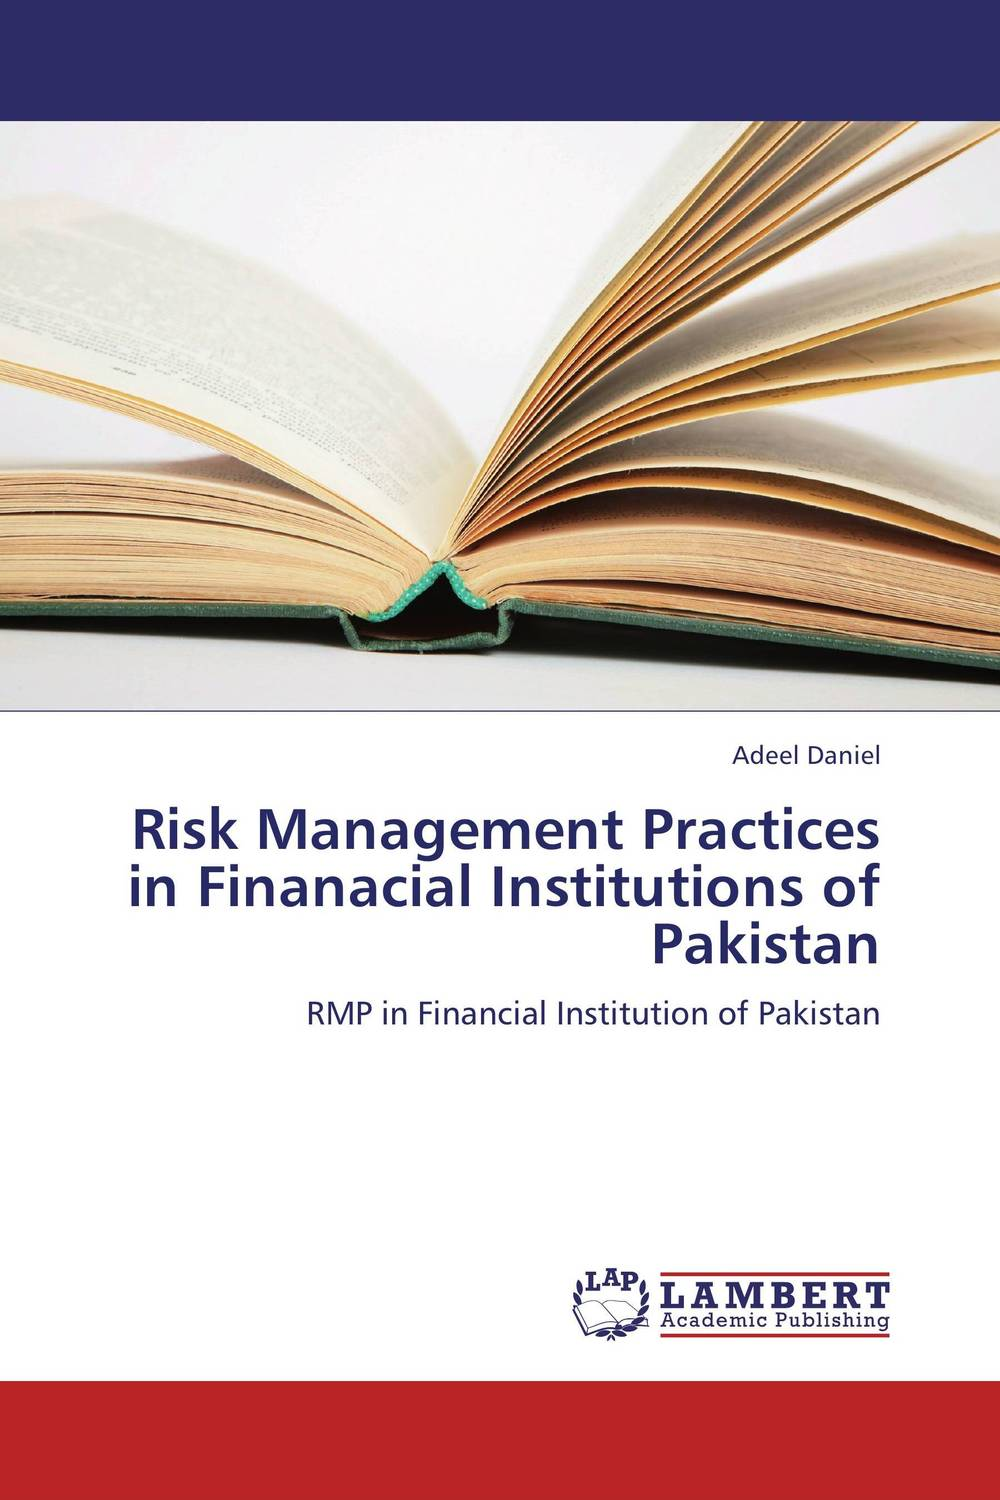 Risk Management Practices in Finanacial Institutions of Pakistan christian szylar handbook of market risk